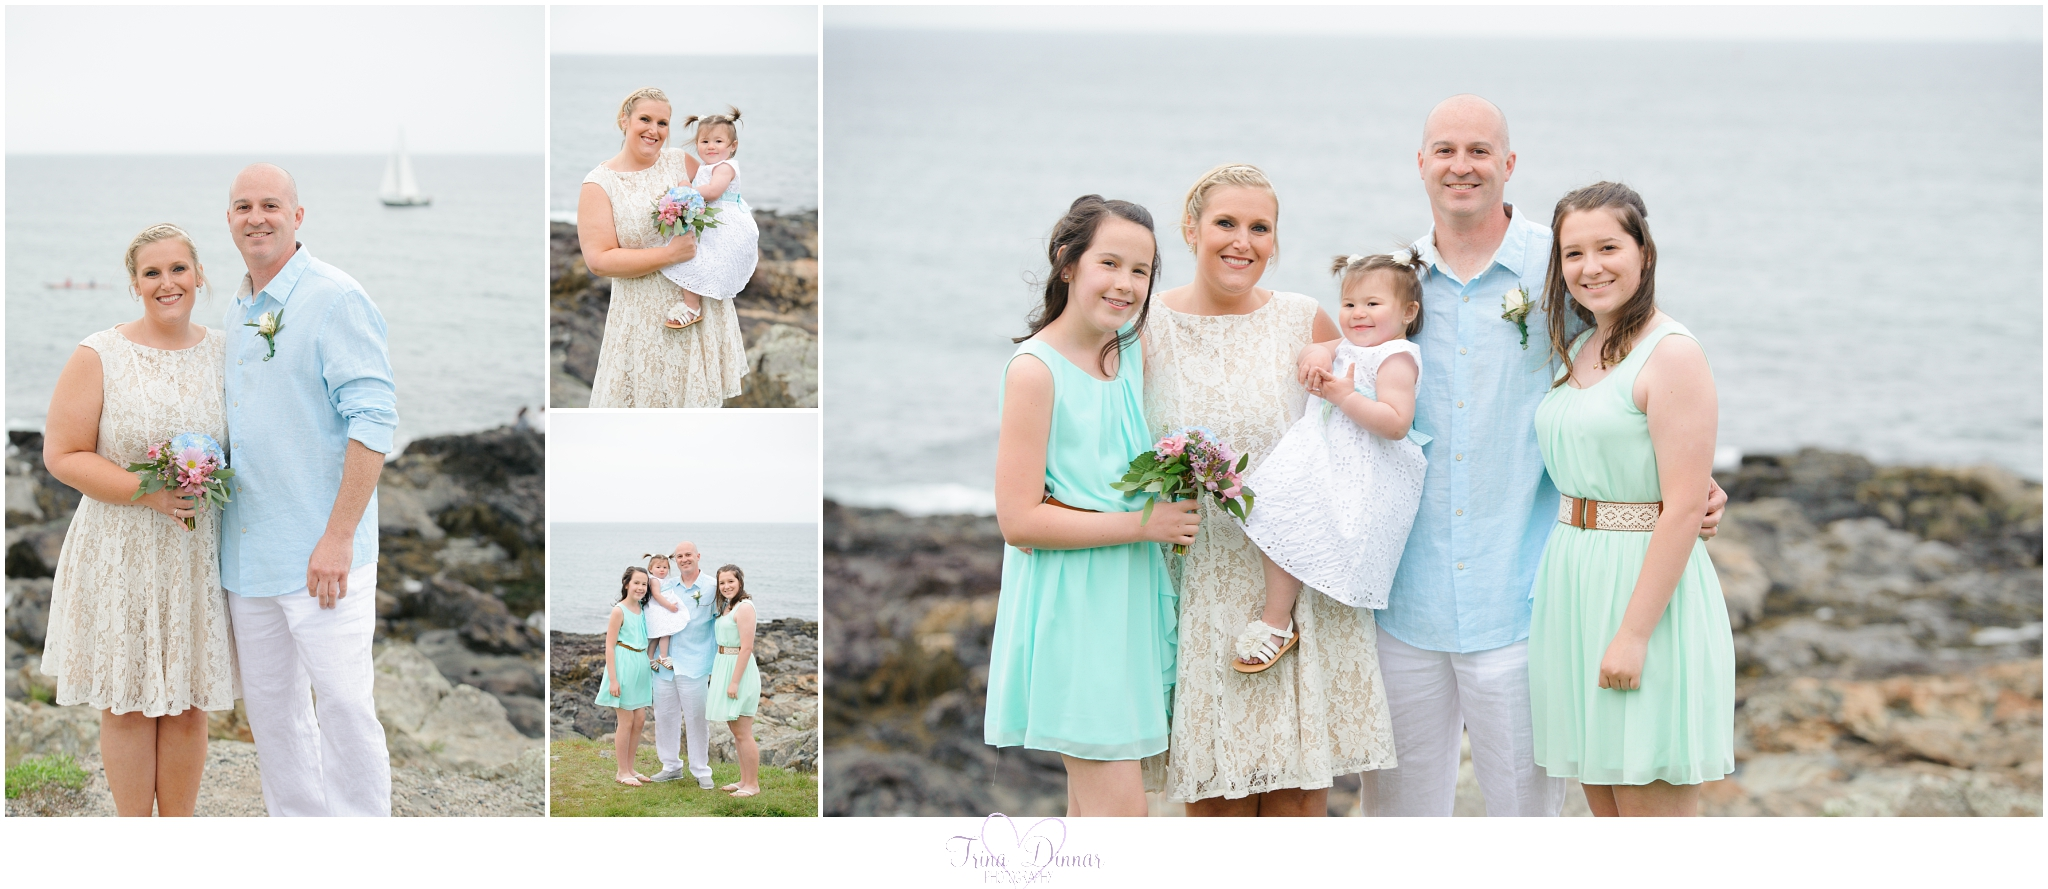 Beach wedding in Oqunquit Maine at Marginal Way. Bride Groom and their three daughters.